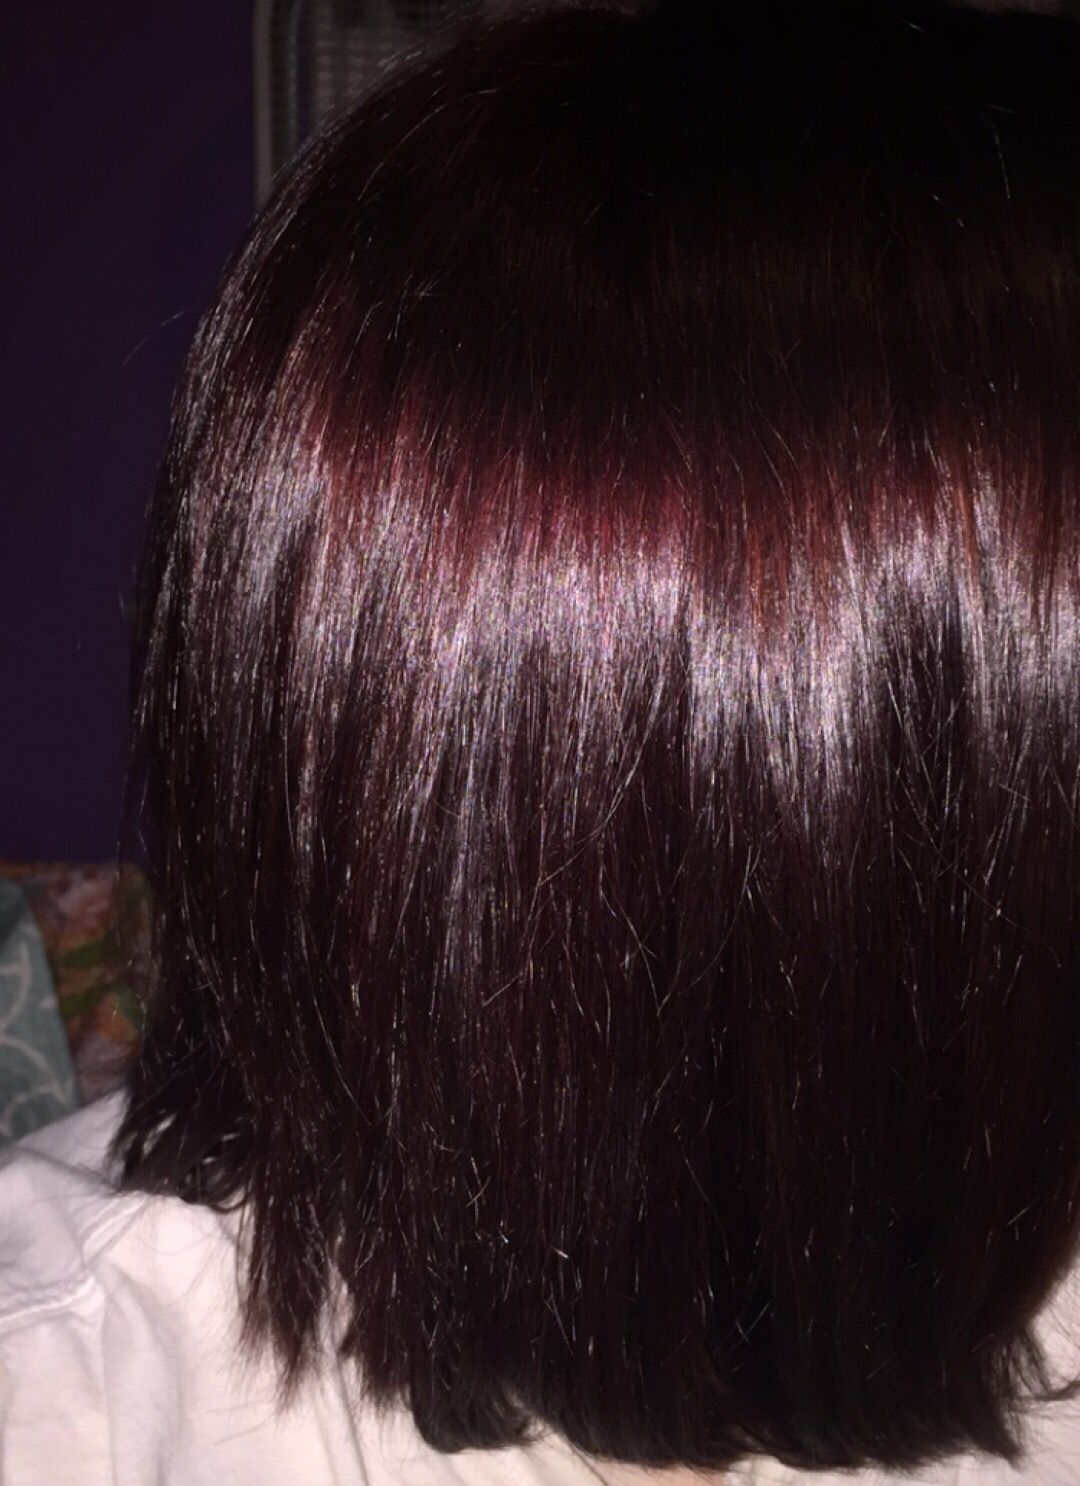 My Hair A 4rr Dark Red Mixed With A 4rm Dark Merlot Hair I